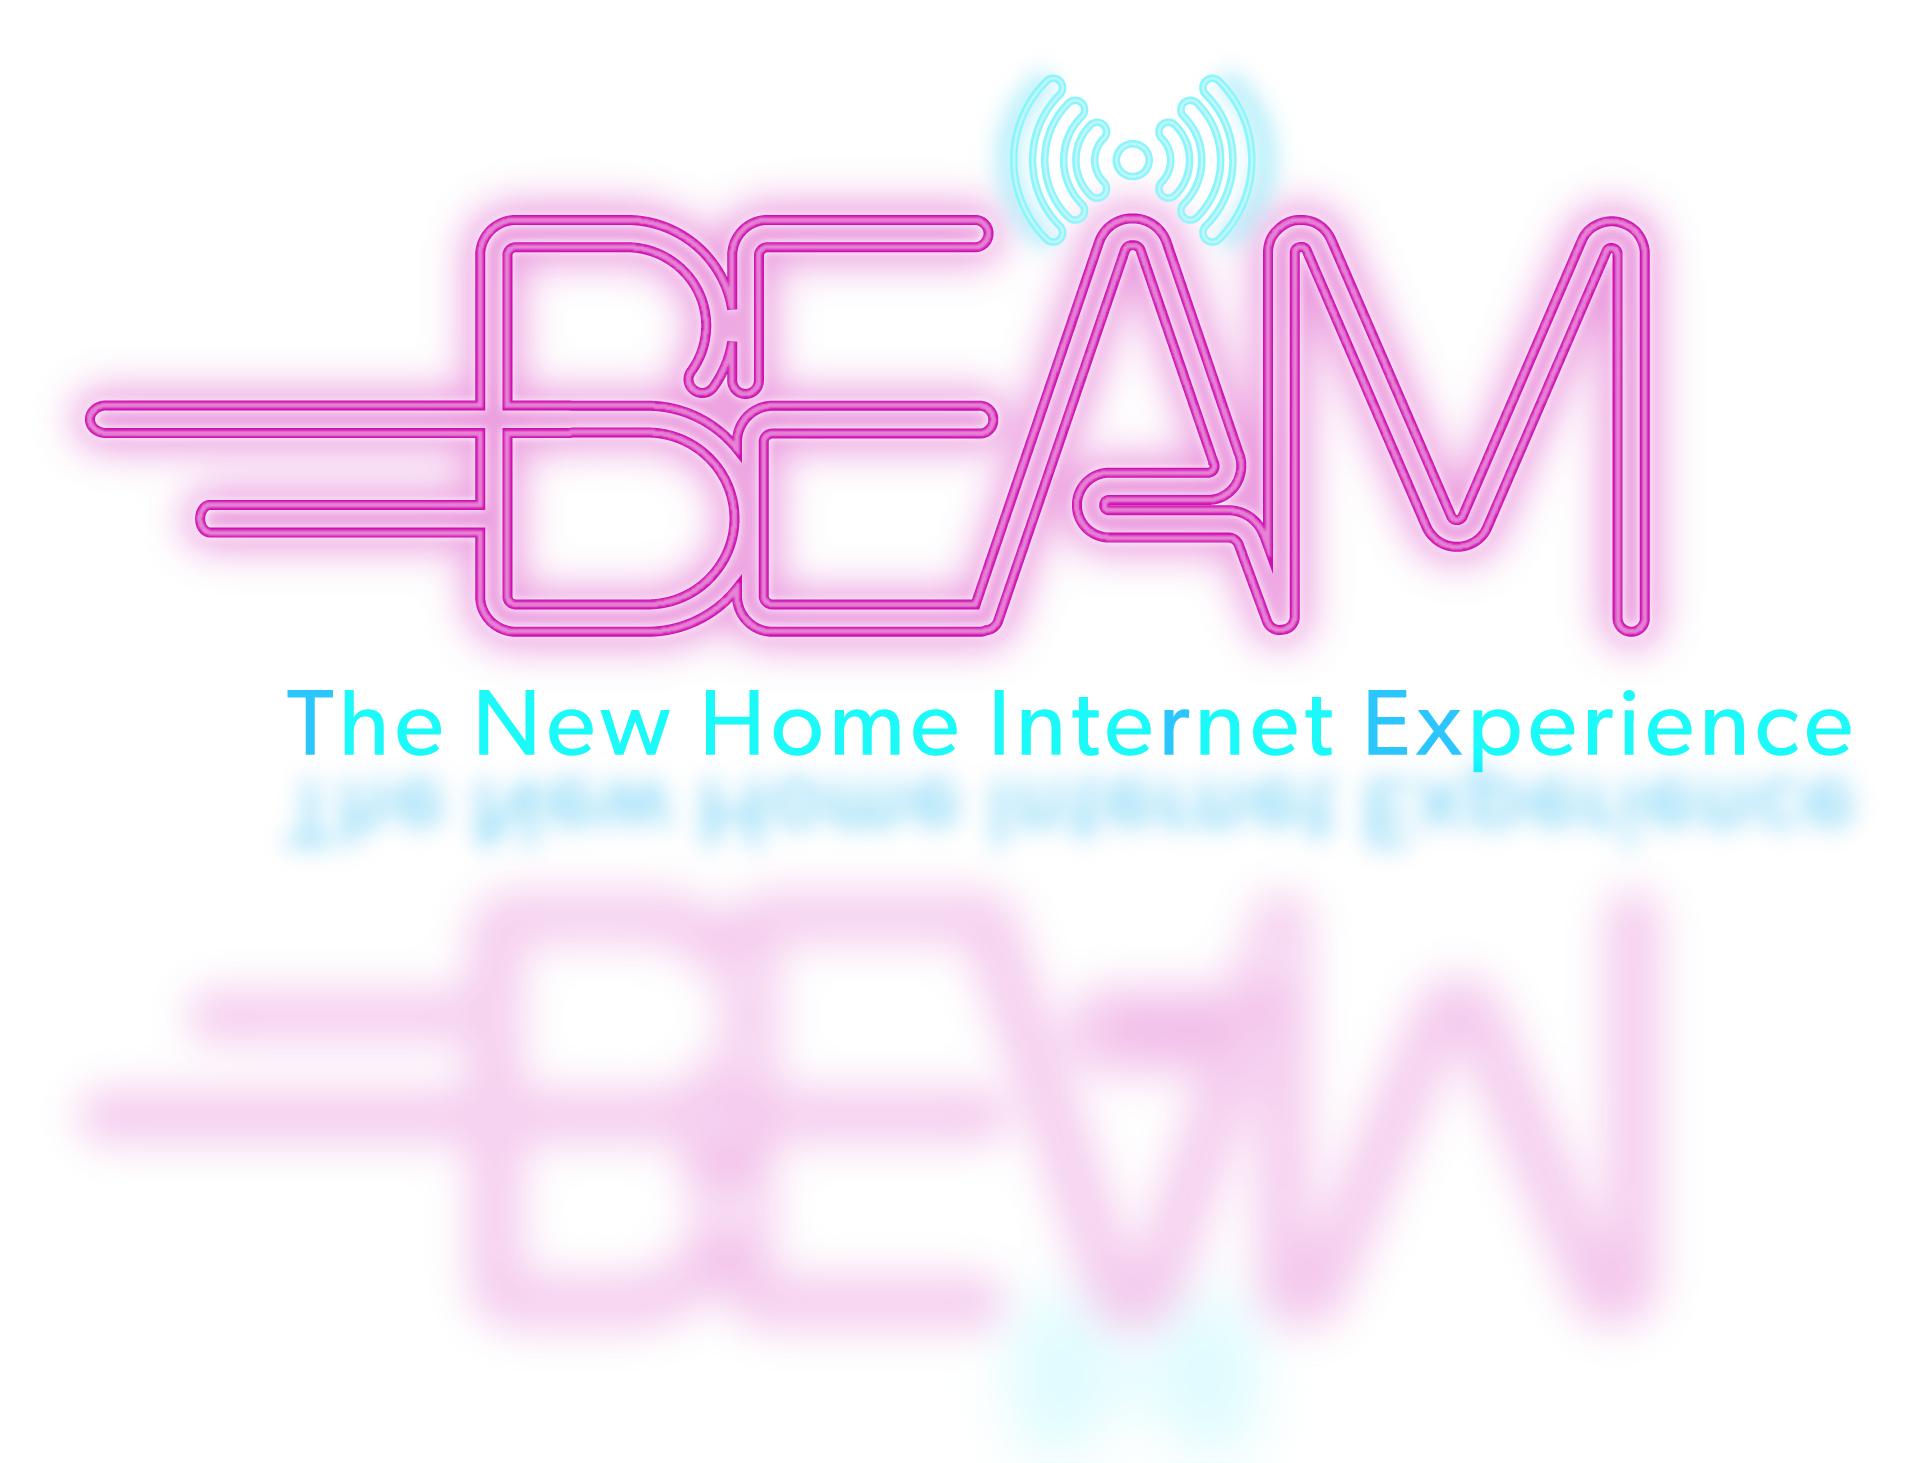 IT&E Beam Internet. A new home internet experience.